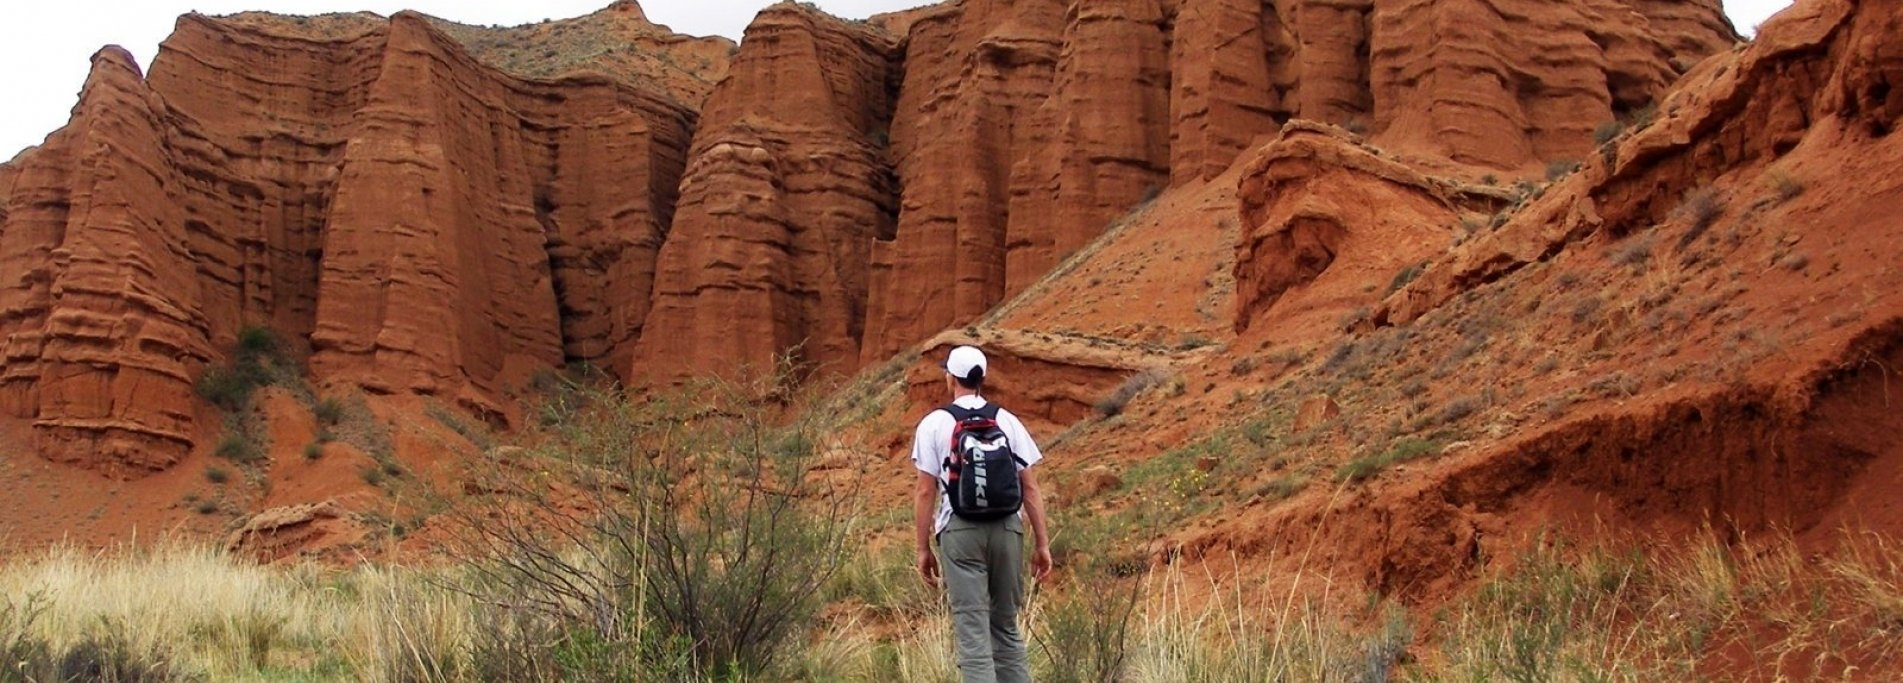 Trip to Konorchek canyons - Trekking in Kyrgyzstan